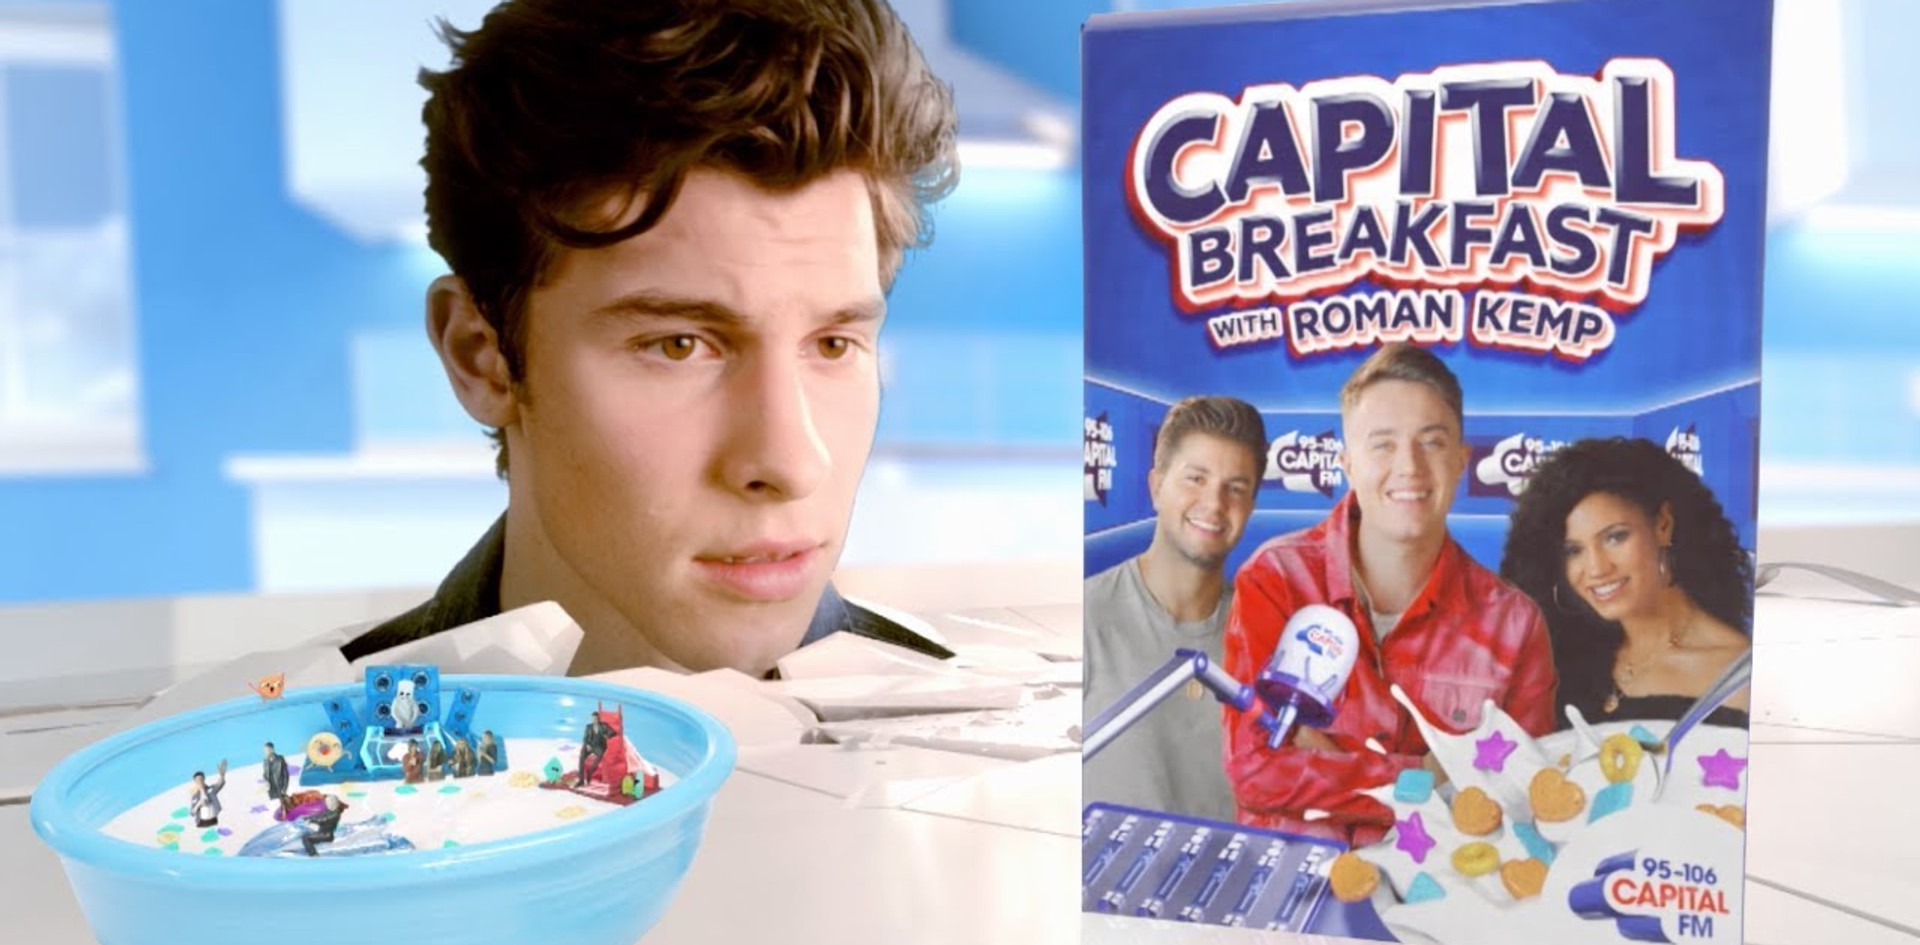 Capital Breakfast with Roman Kemp... Now That Sounds Tasty!